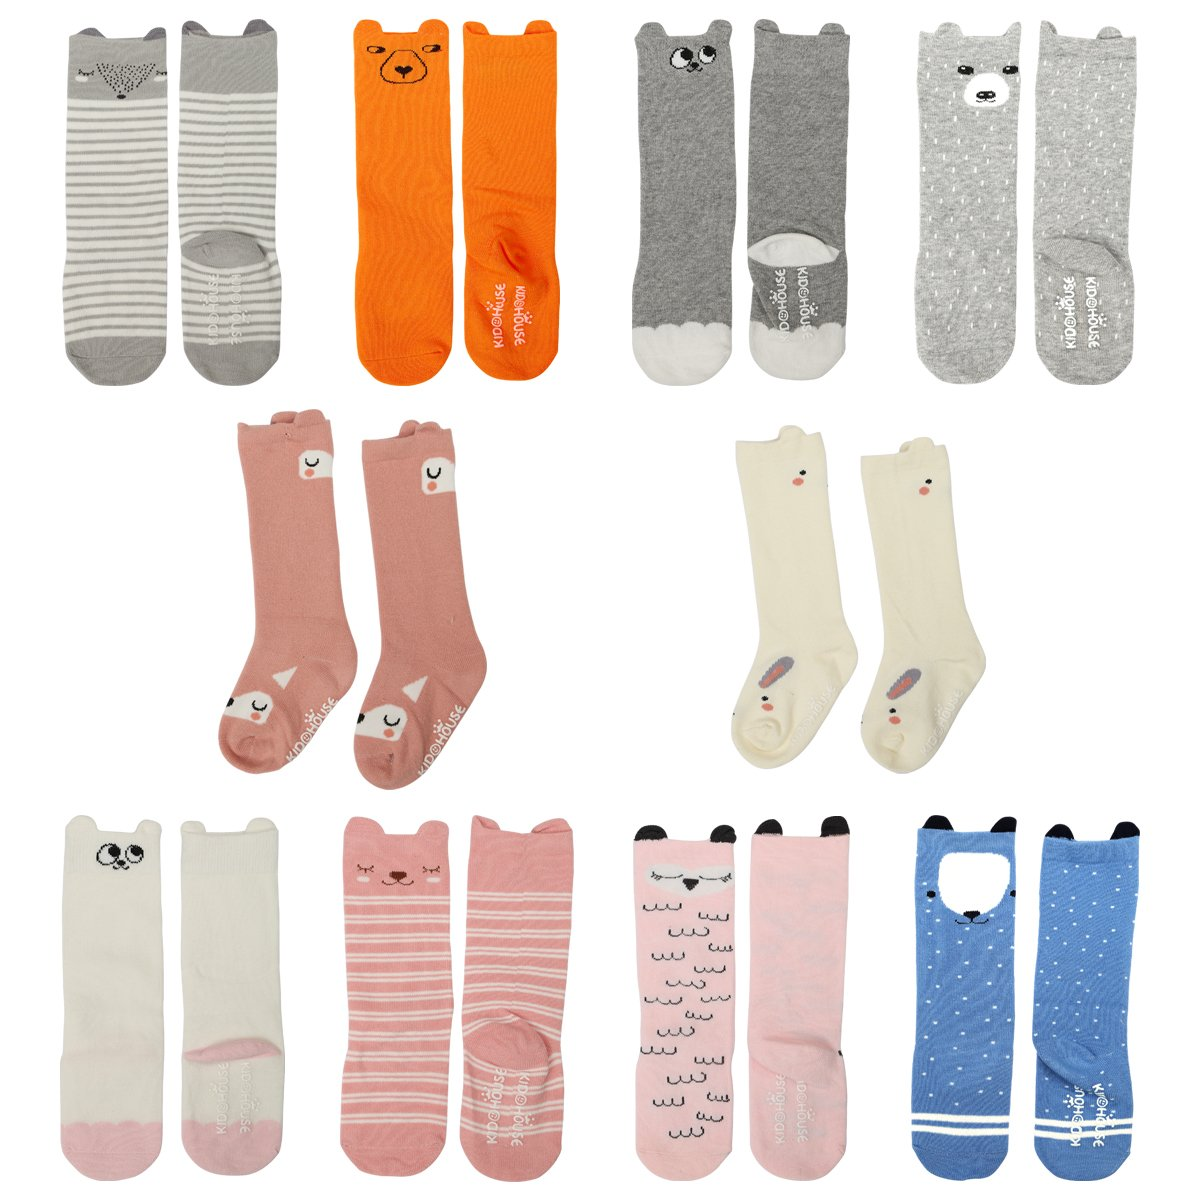 c03ee93c7c8 High quality material - Our baby knee high socks are made of cotton    spandex. Soft touch! Breathable! Lovely animal design - Pink bear